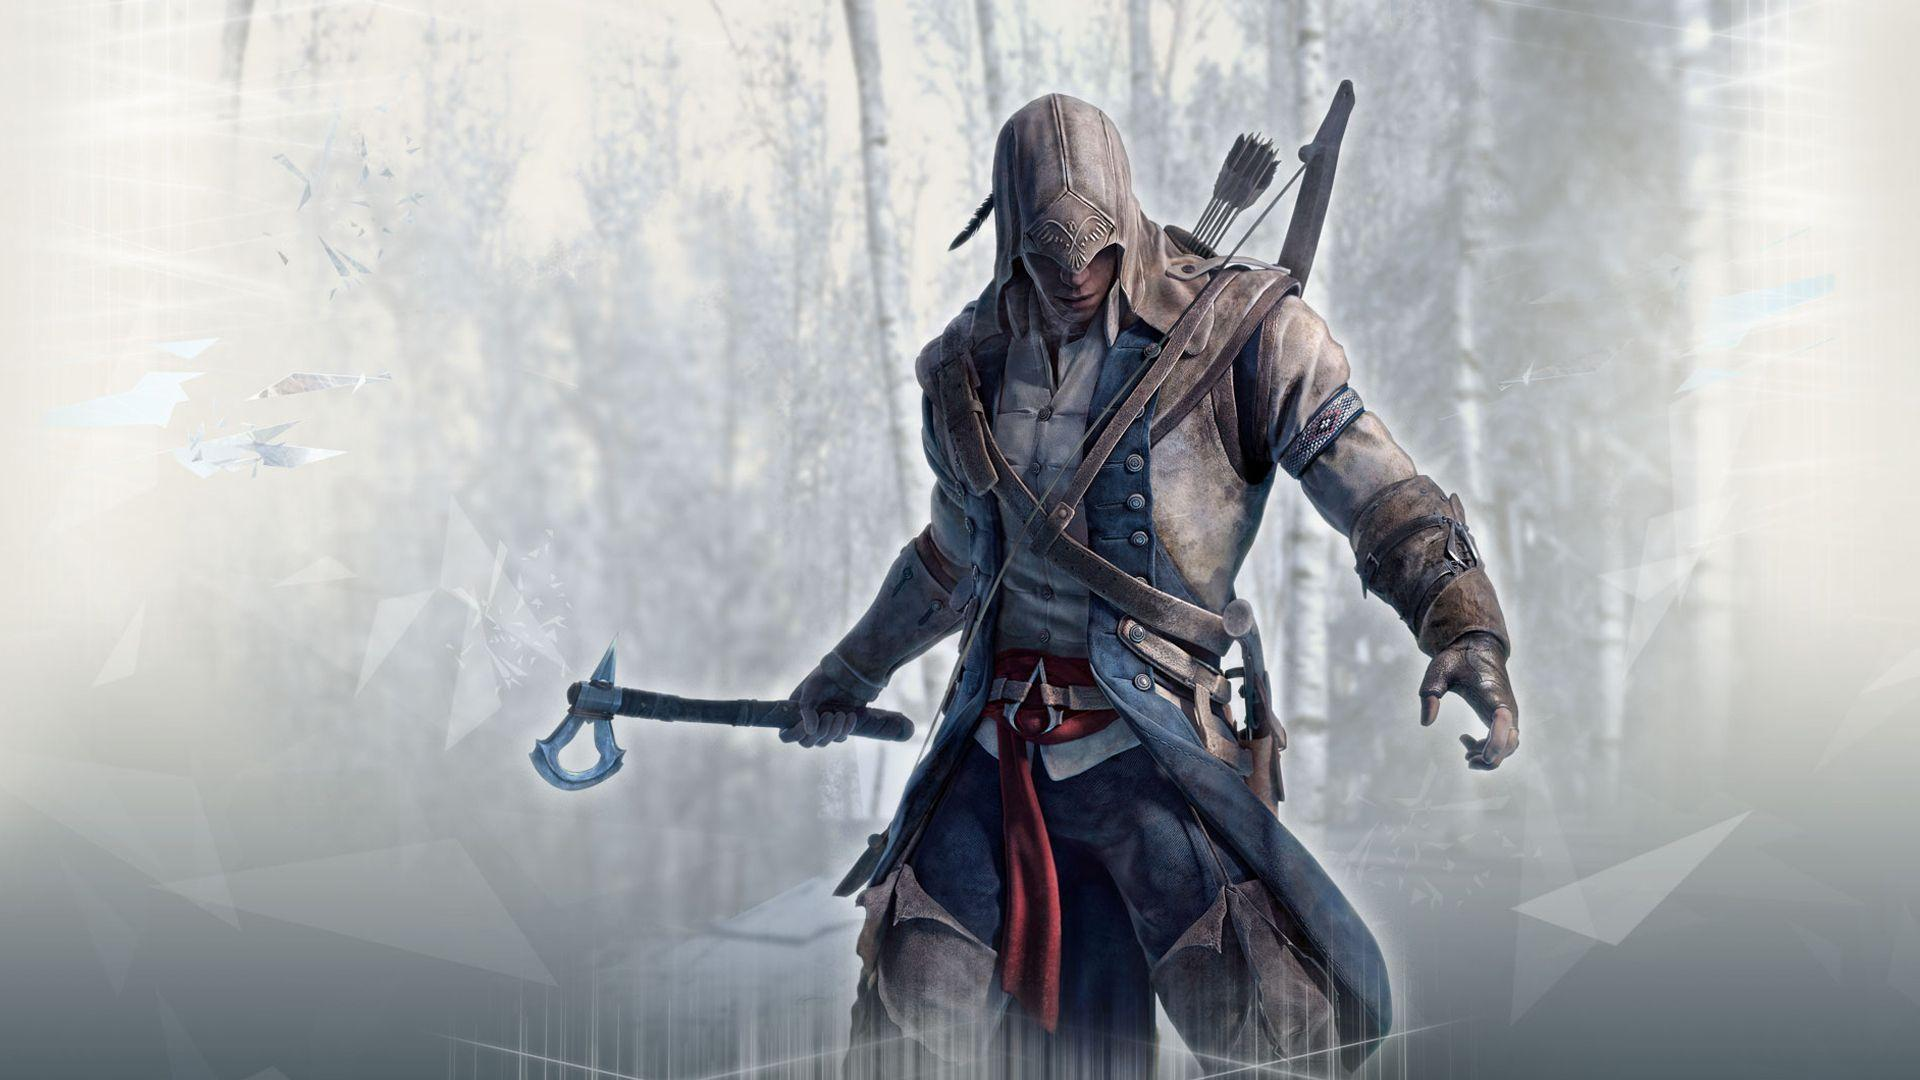 creed iii wallpaper - photo #22